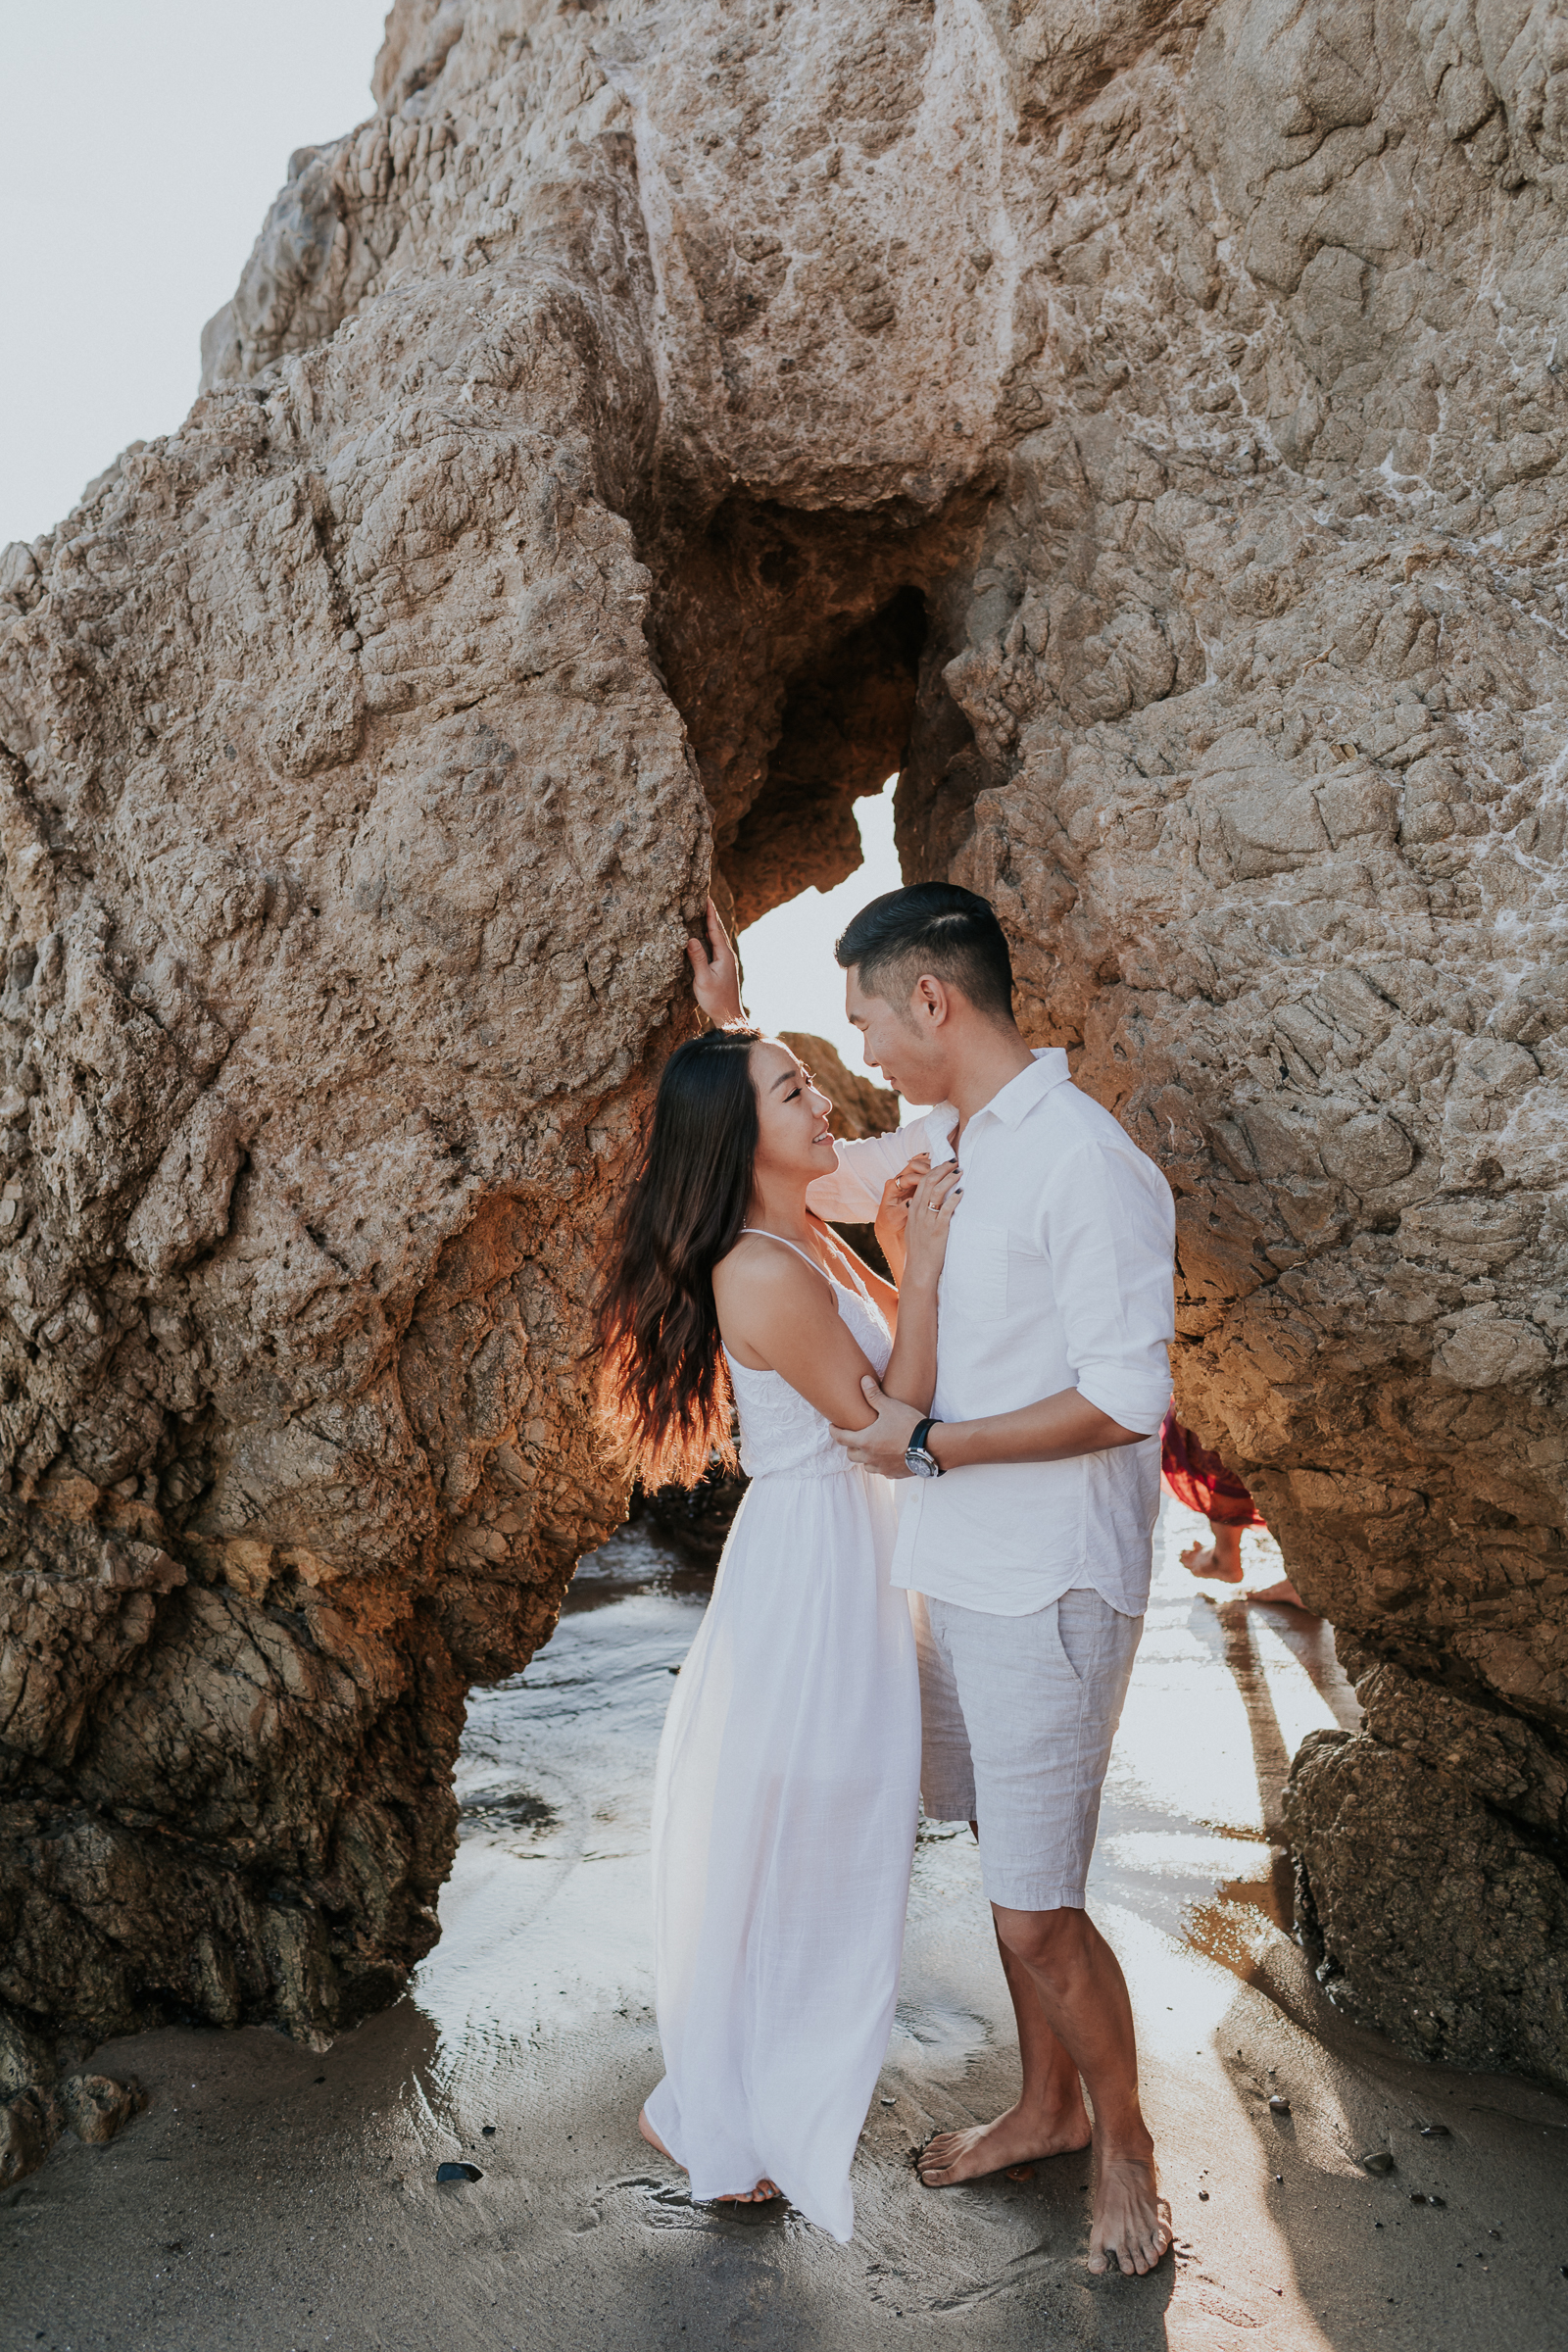 Malibu-El-Matador-State-Beach-Sunset-Engagement-Photos-Los-Angeles-Documentary-Wedding-Photographer-26.jpg